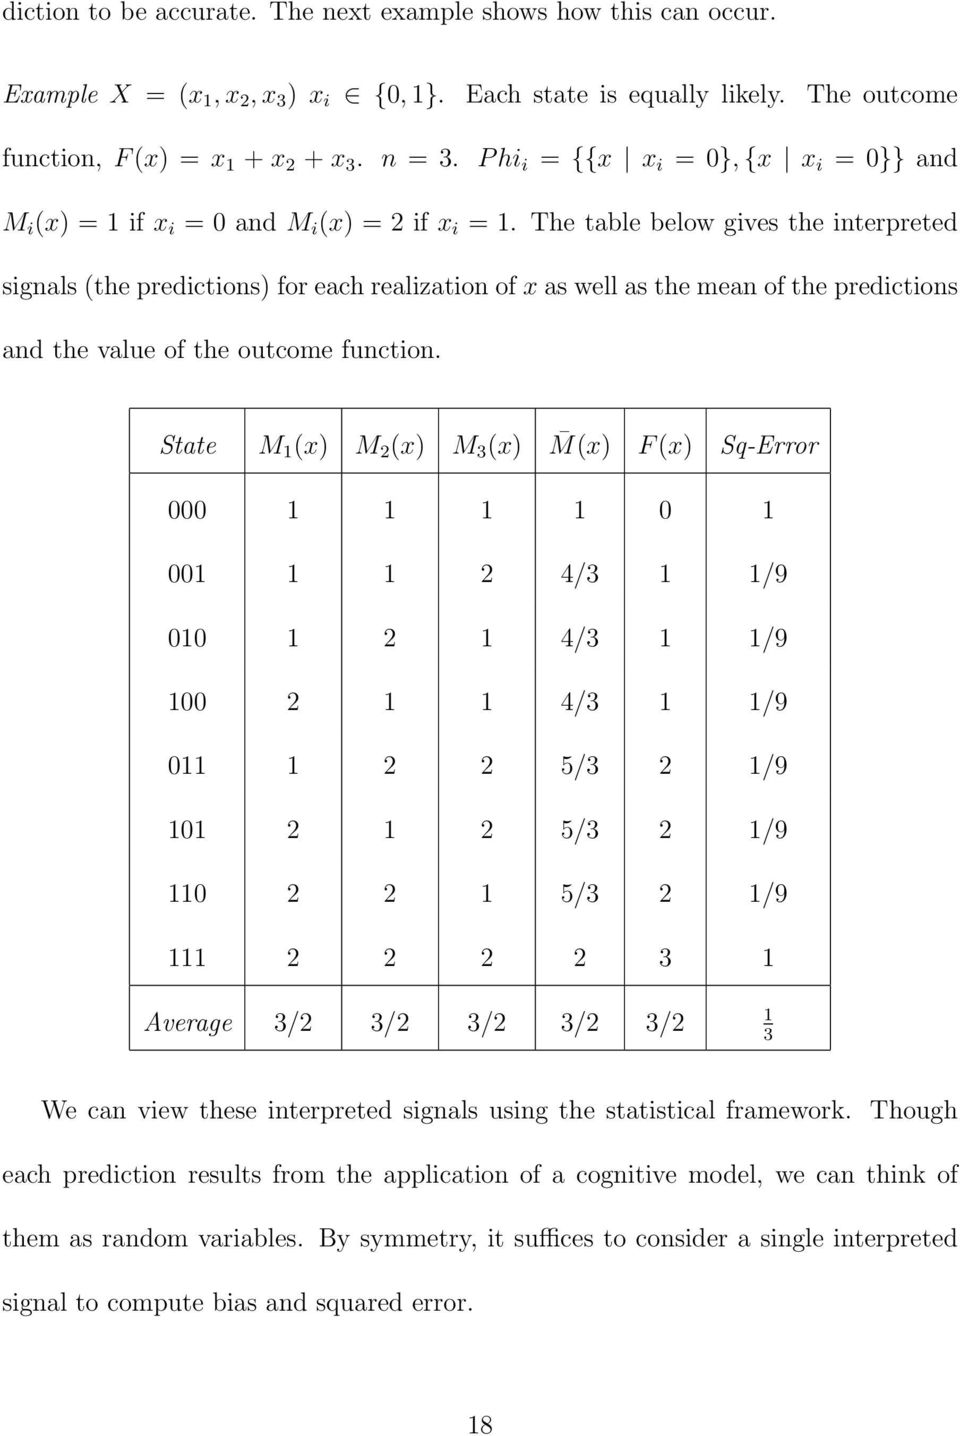 The table below gives the iterpreted sigals (the predictios) for each realizatio of x as well as the mea of the predictios ad the value of the outcome fuctio.